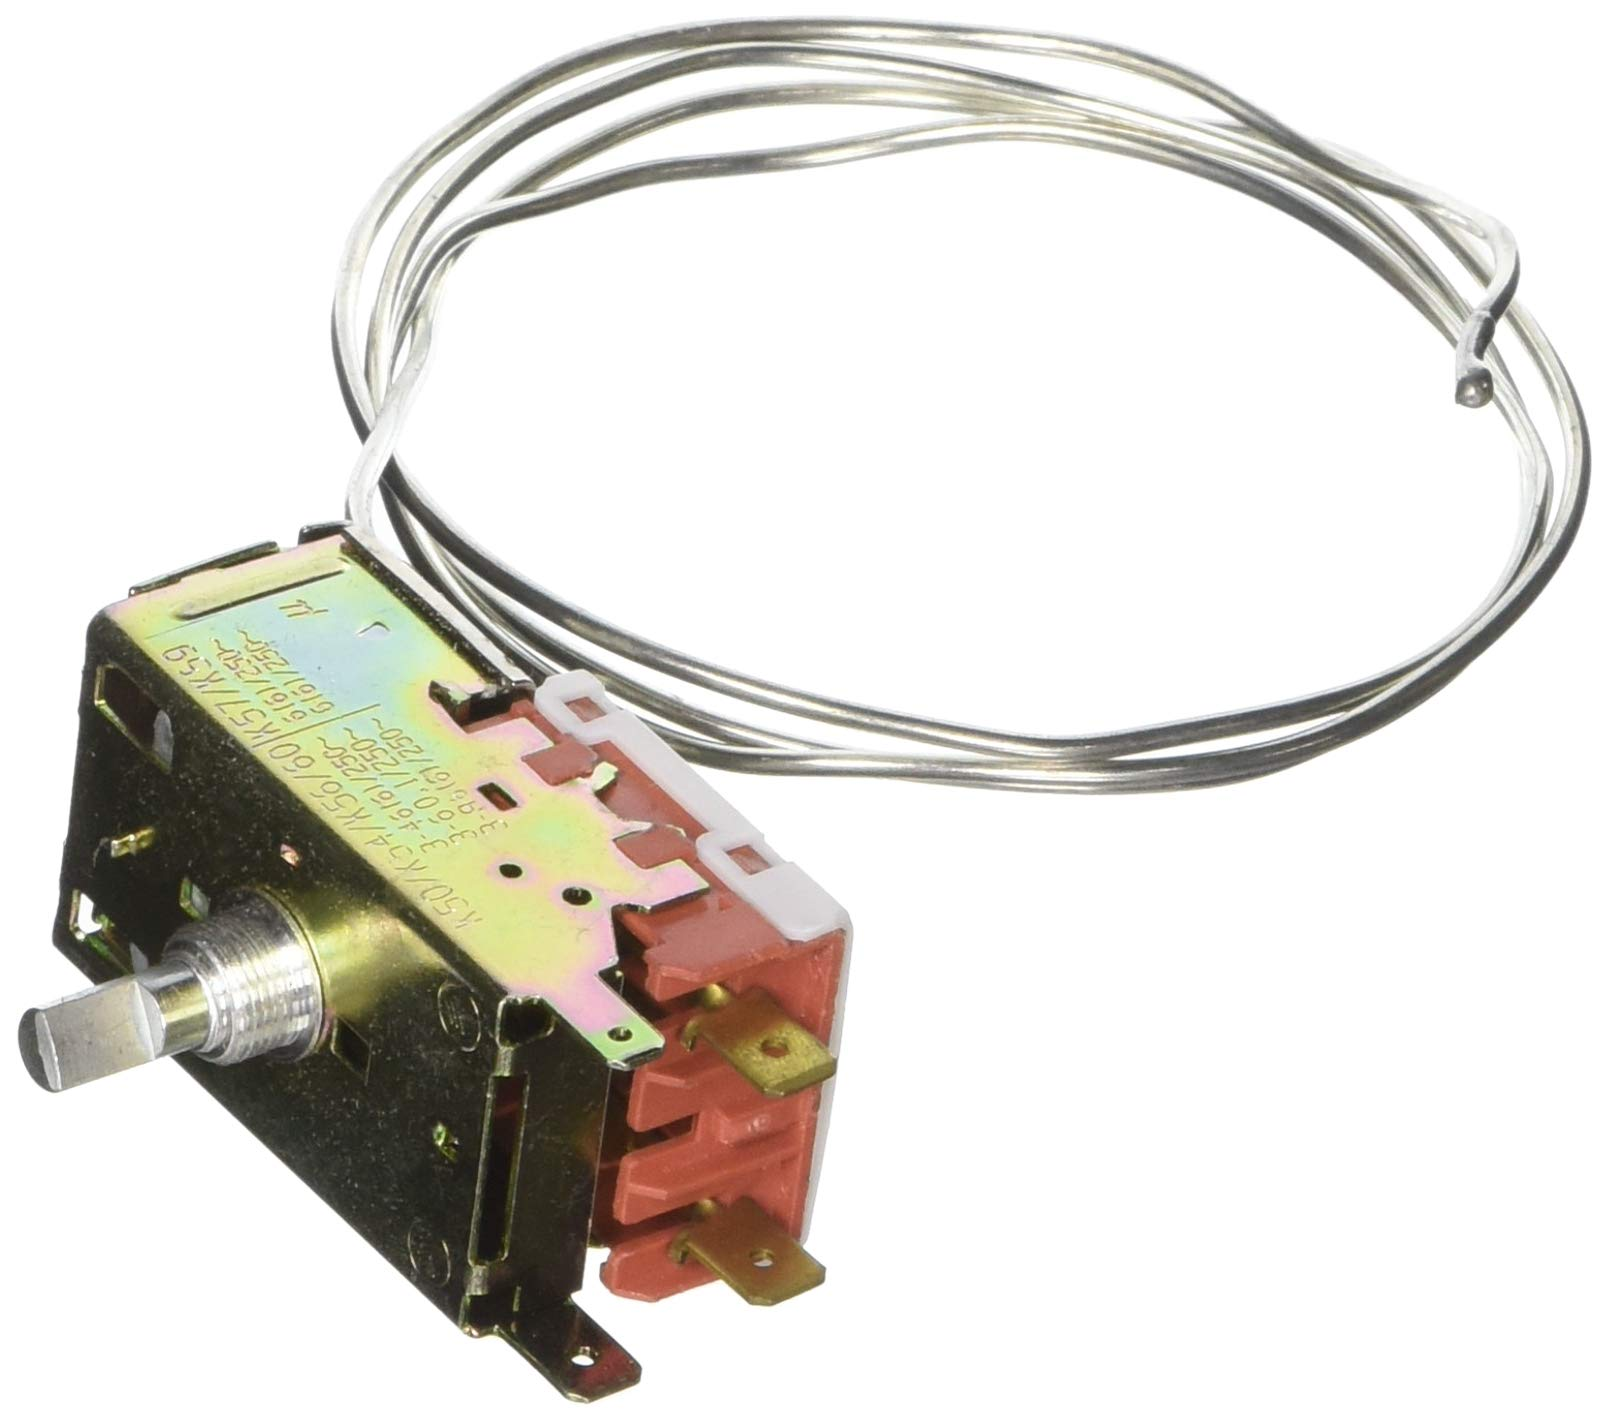 sourcingmap a13072900ux0732 K50-P1125 Refrigerator Refrigeration Thermostat 1M Metal Cord